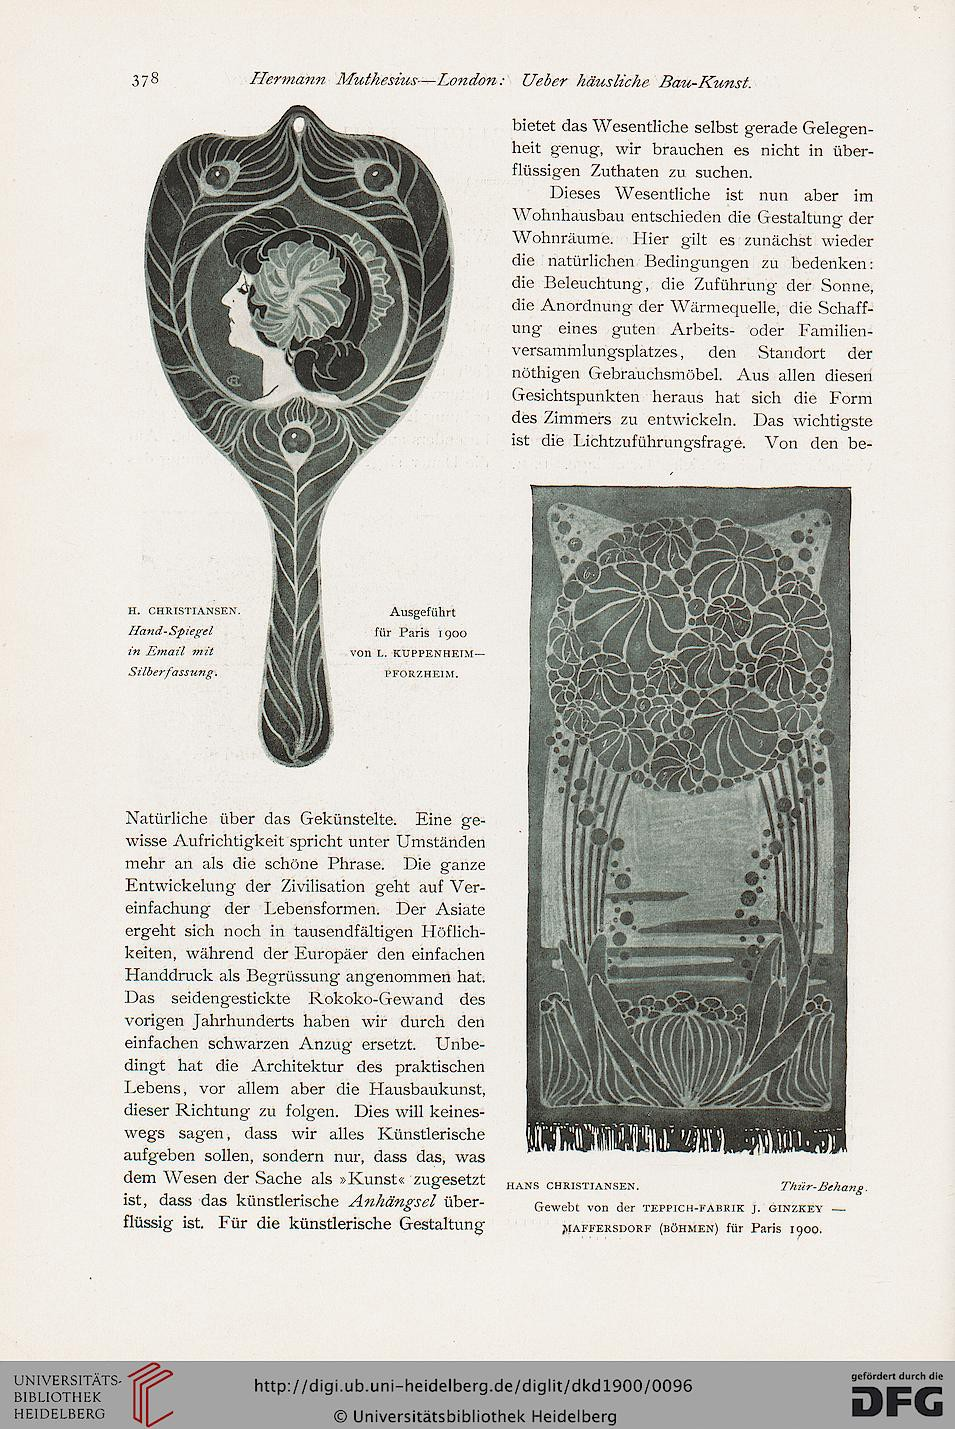 Spiegel Entwurf Hans Christiansen. 1900 für die Pariser Weltausstellung. Mirror made by Kuppenheim, designed by Hans Christiansen for the worldexhebition in Paris 1900.